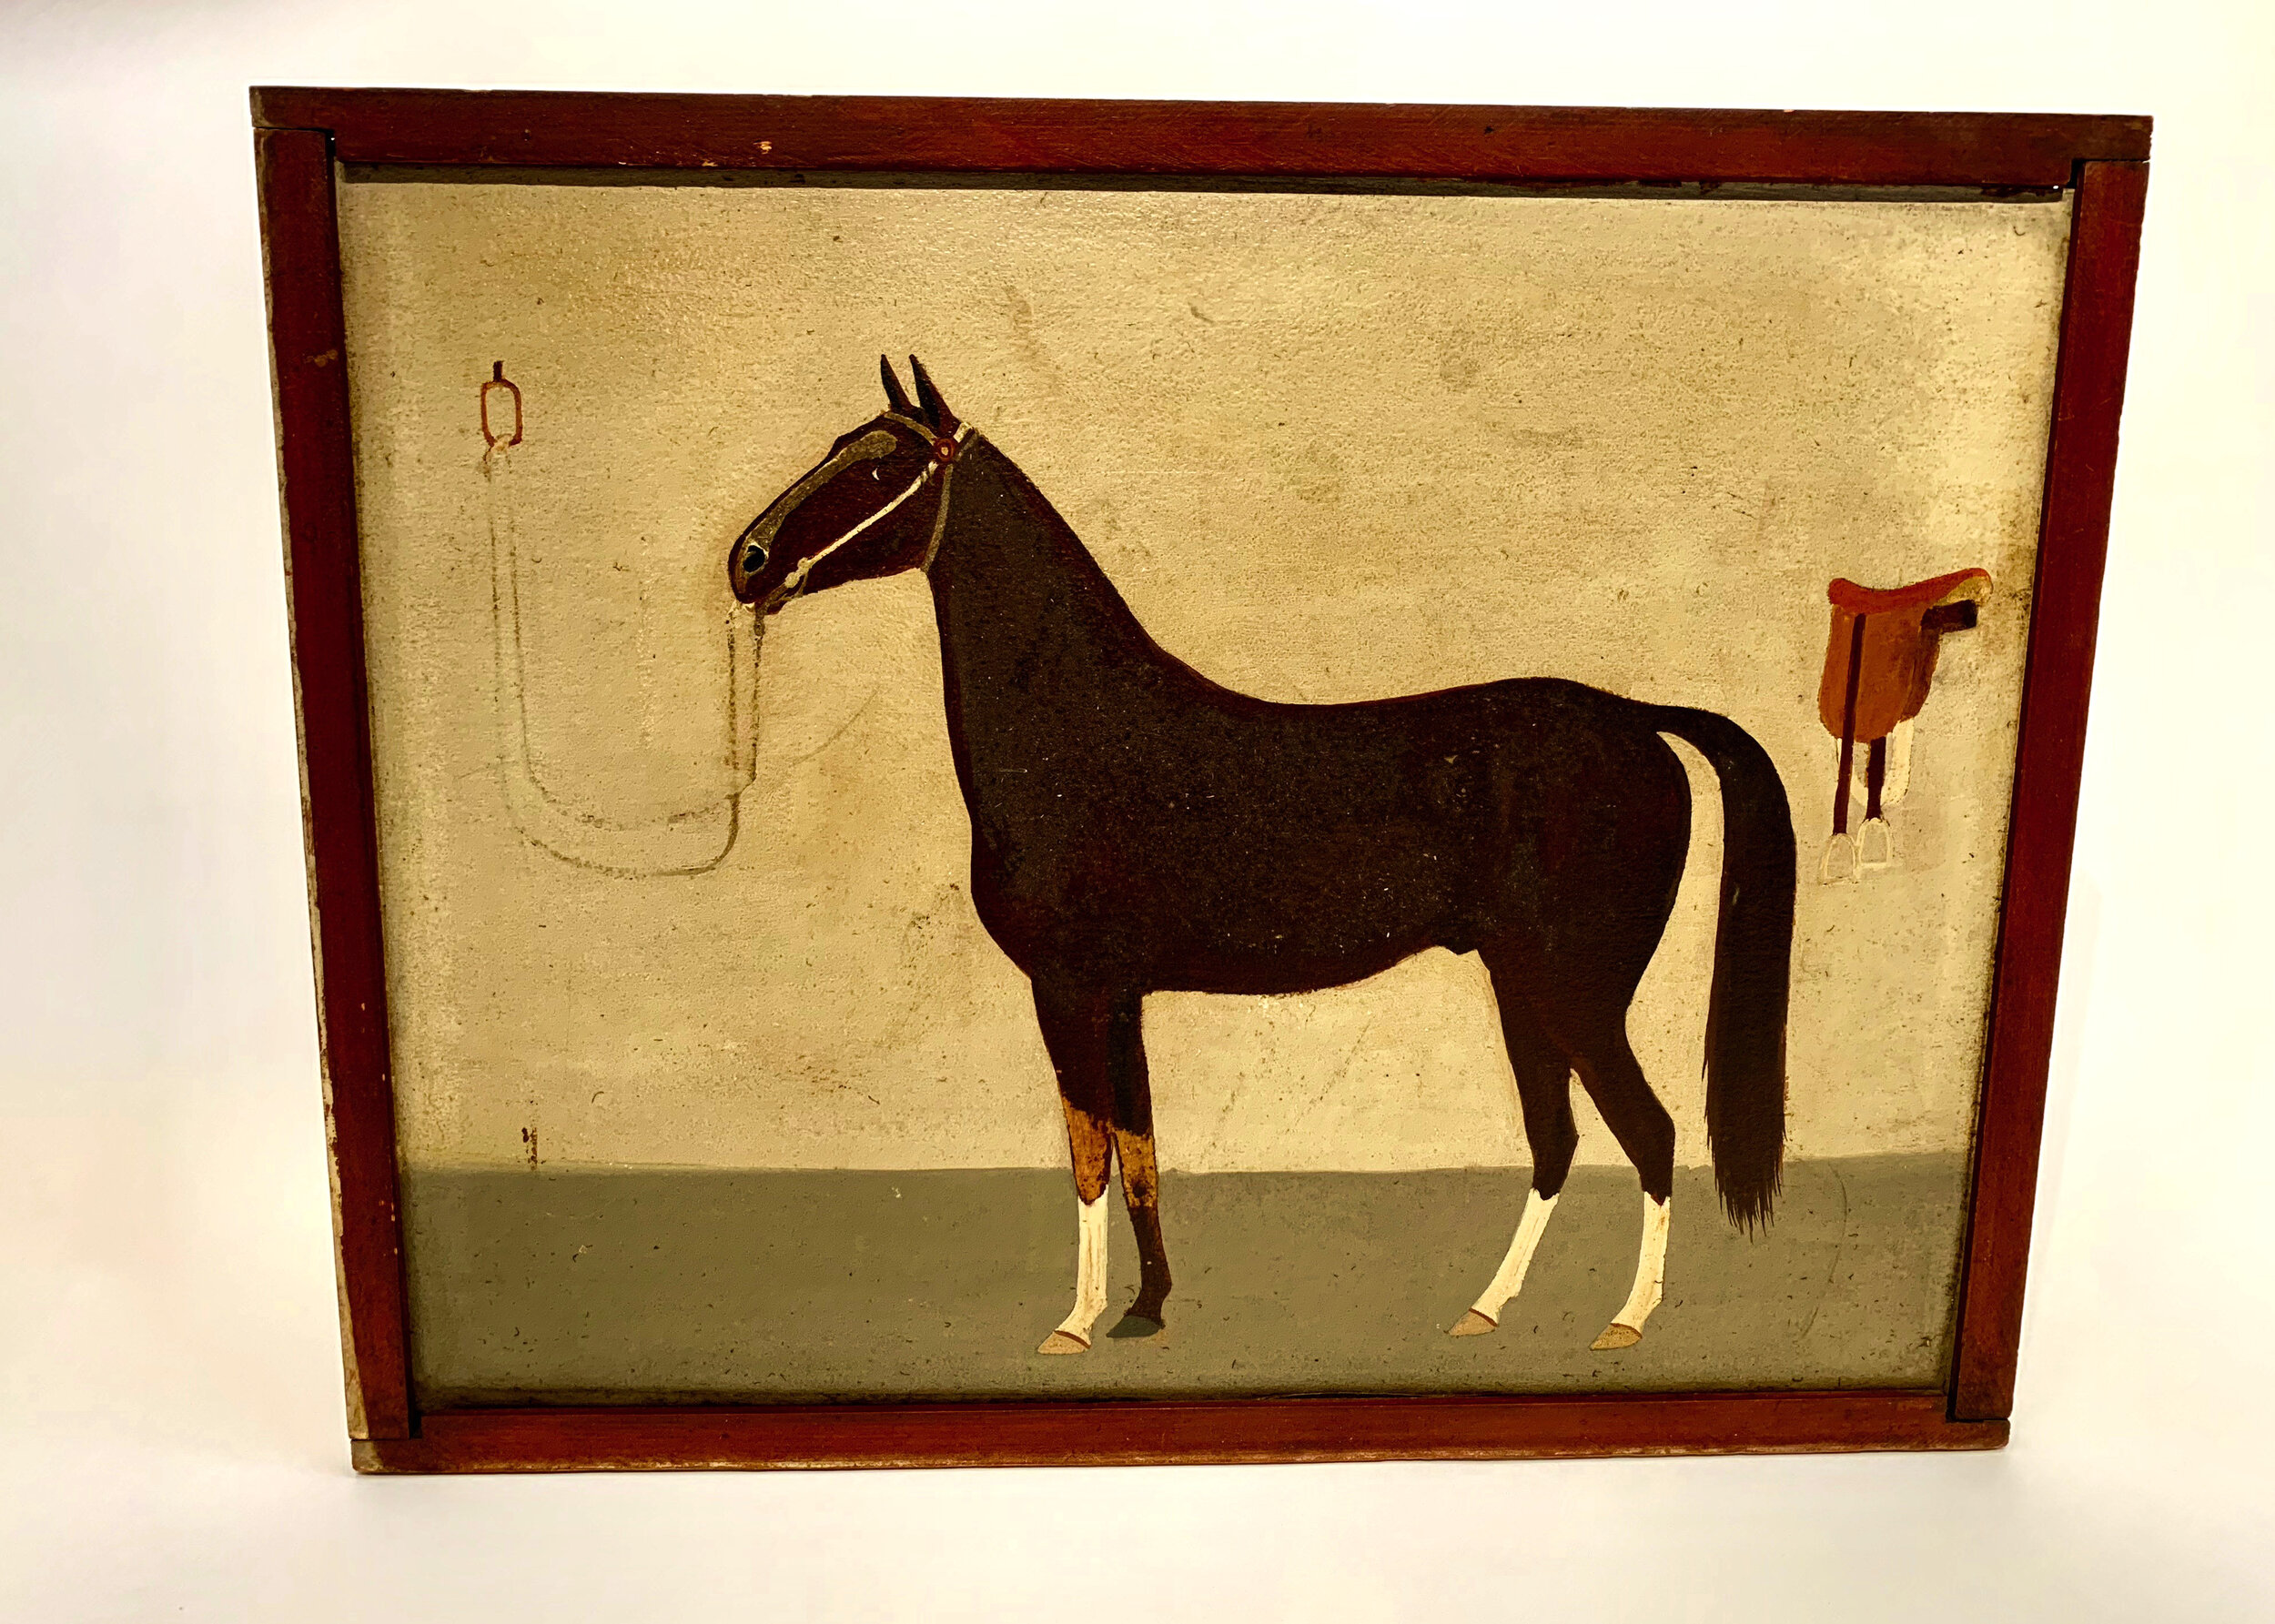 Primitive Saddlebred Horse, by Audrain McDonough